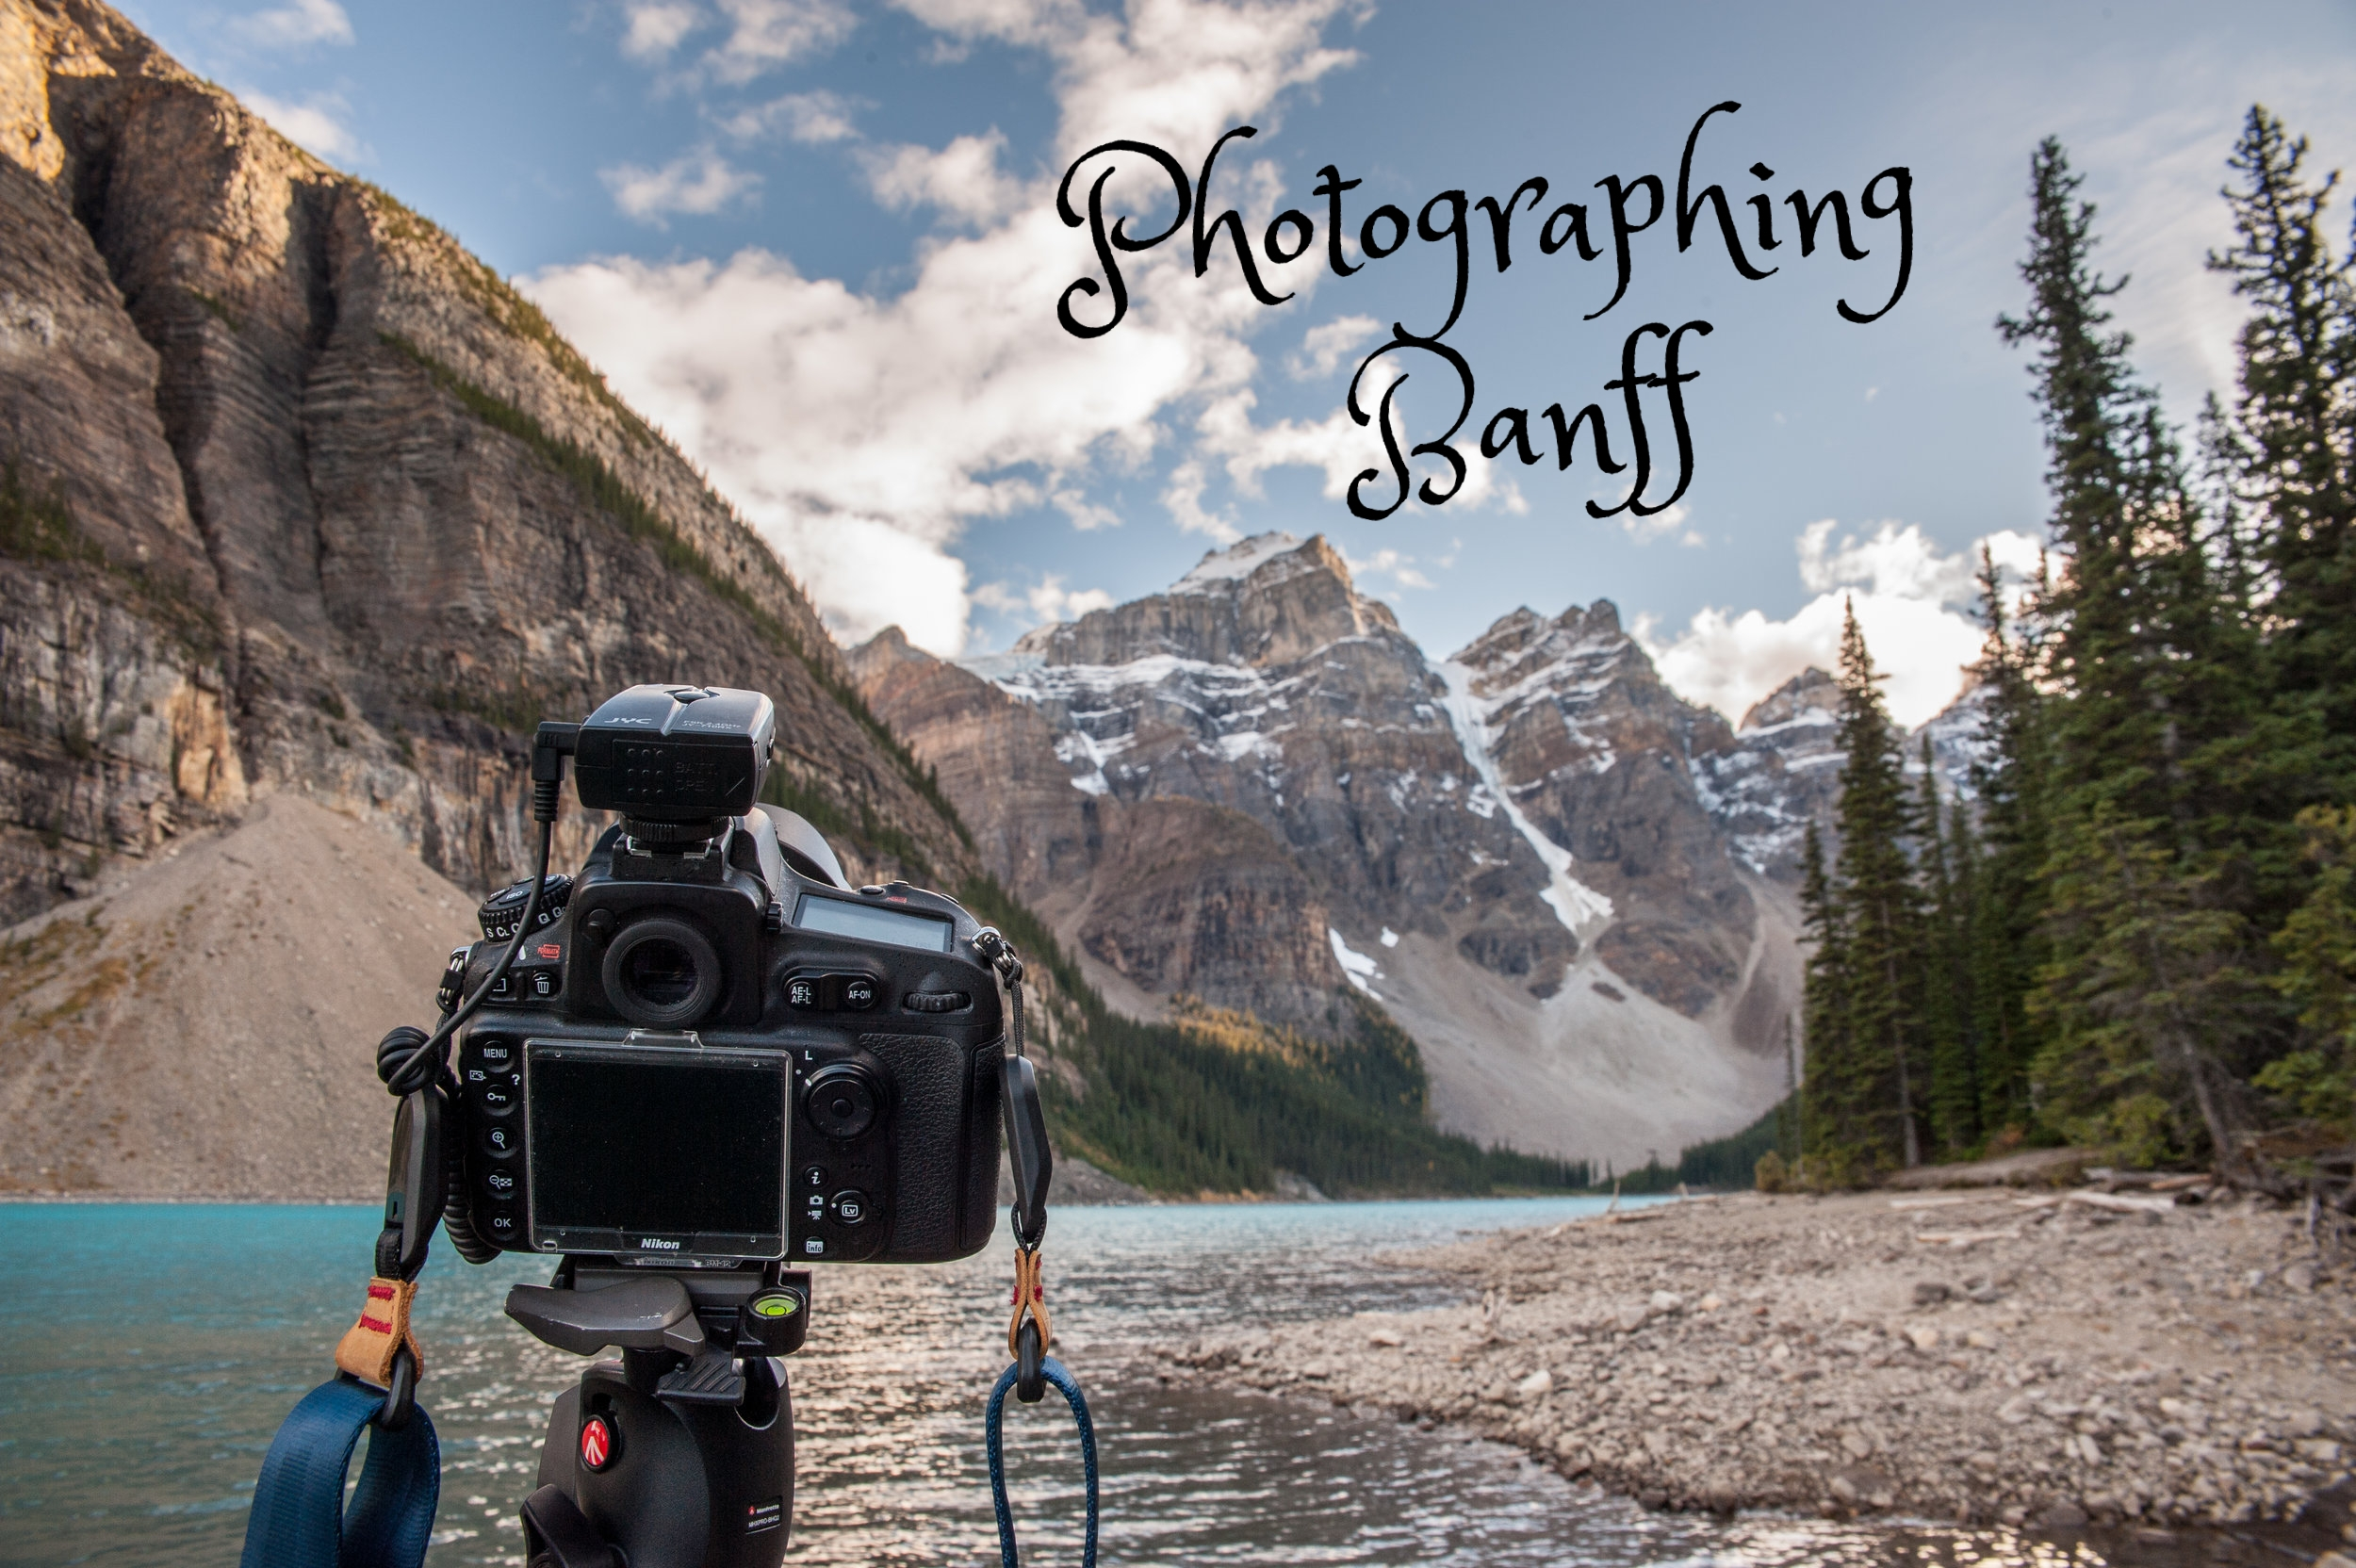 First stop on the photography checklist. Photographing Moraine Lake as the sun is setting.